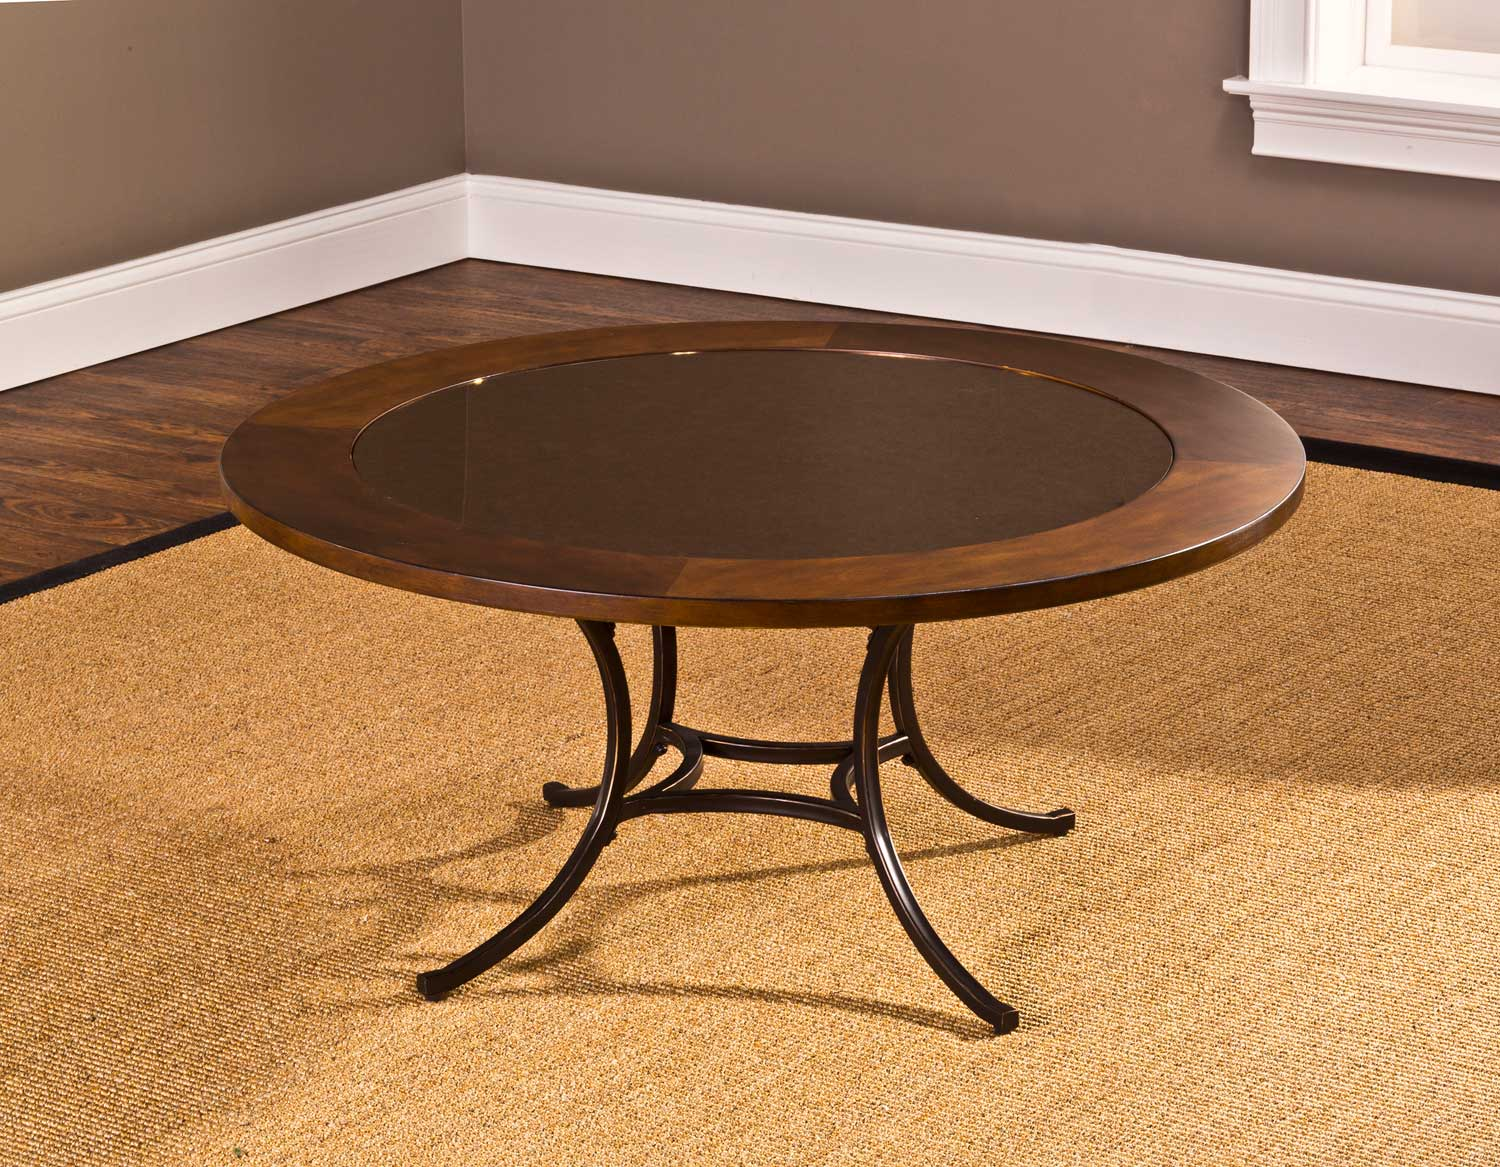 Hillsdale Montclair Round Coffee Table Wood Border With